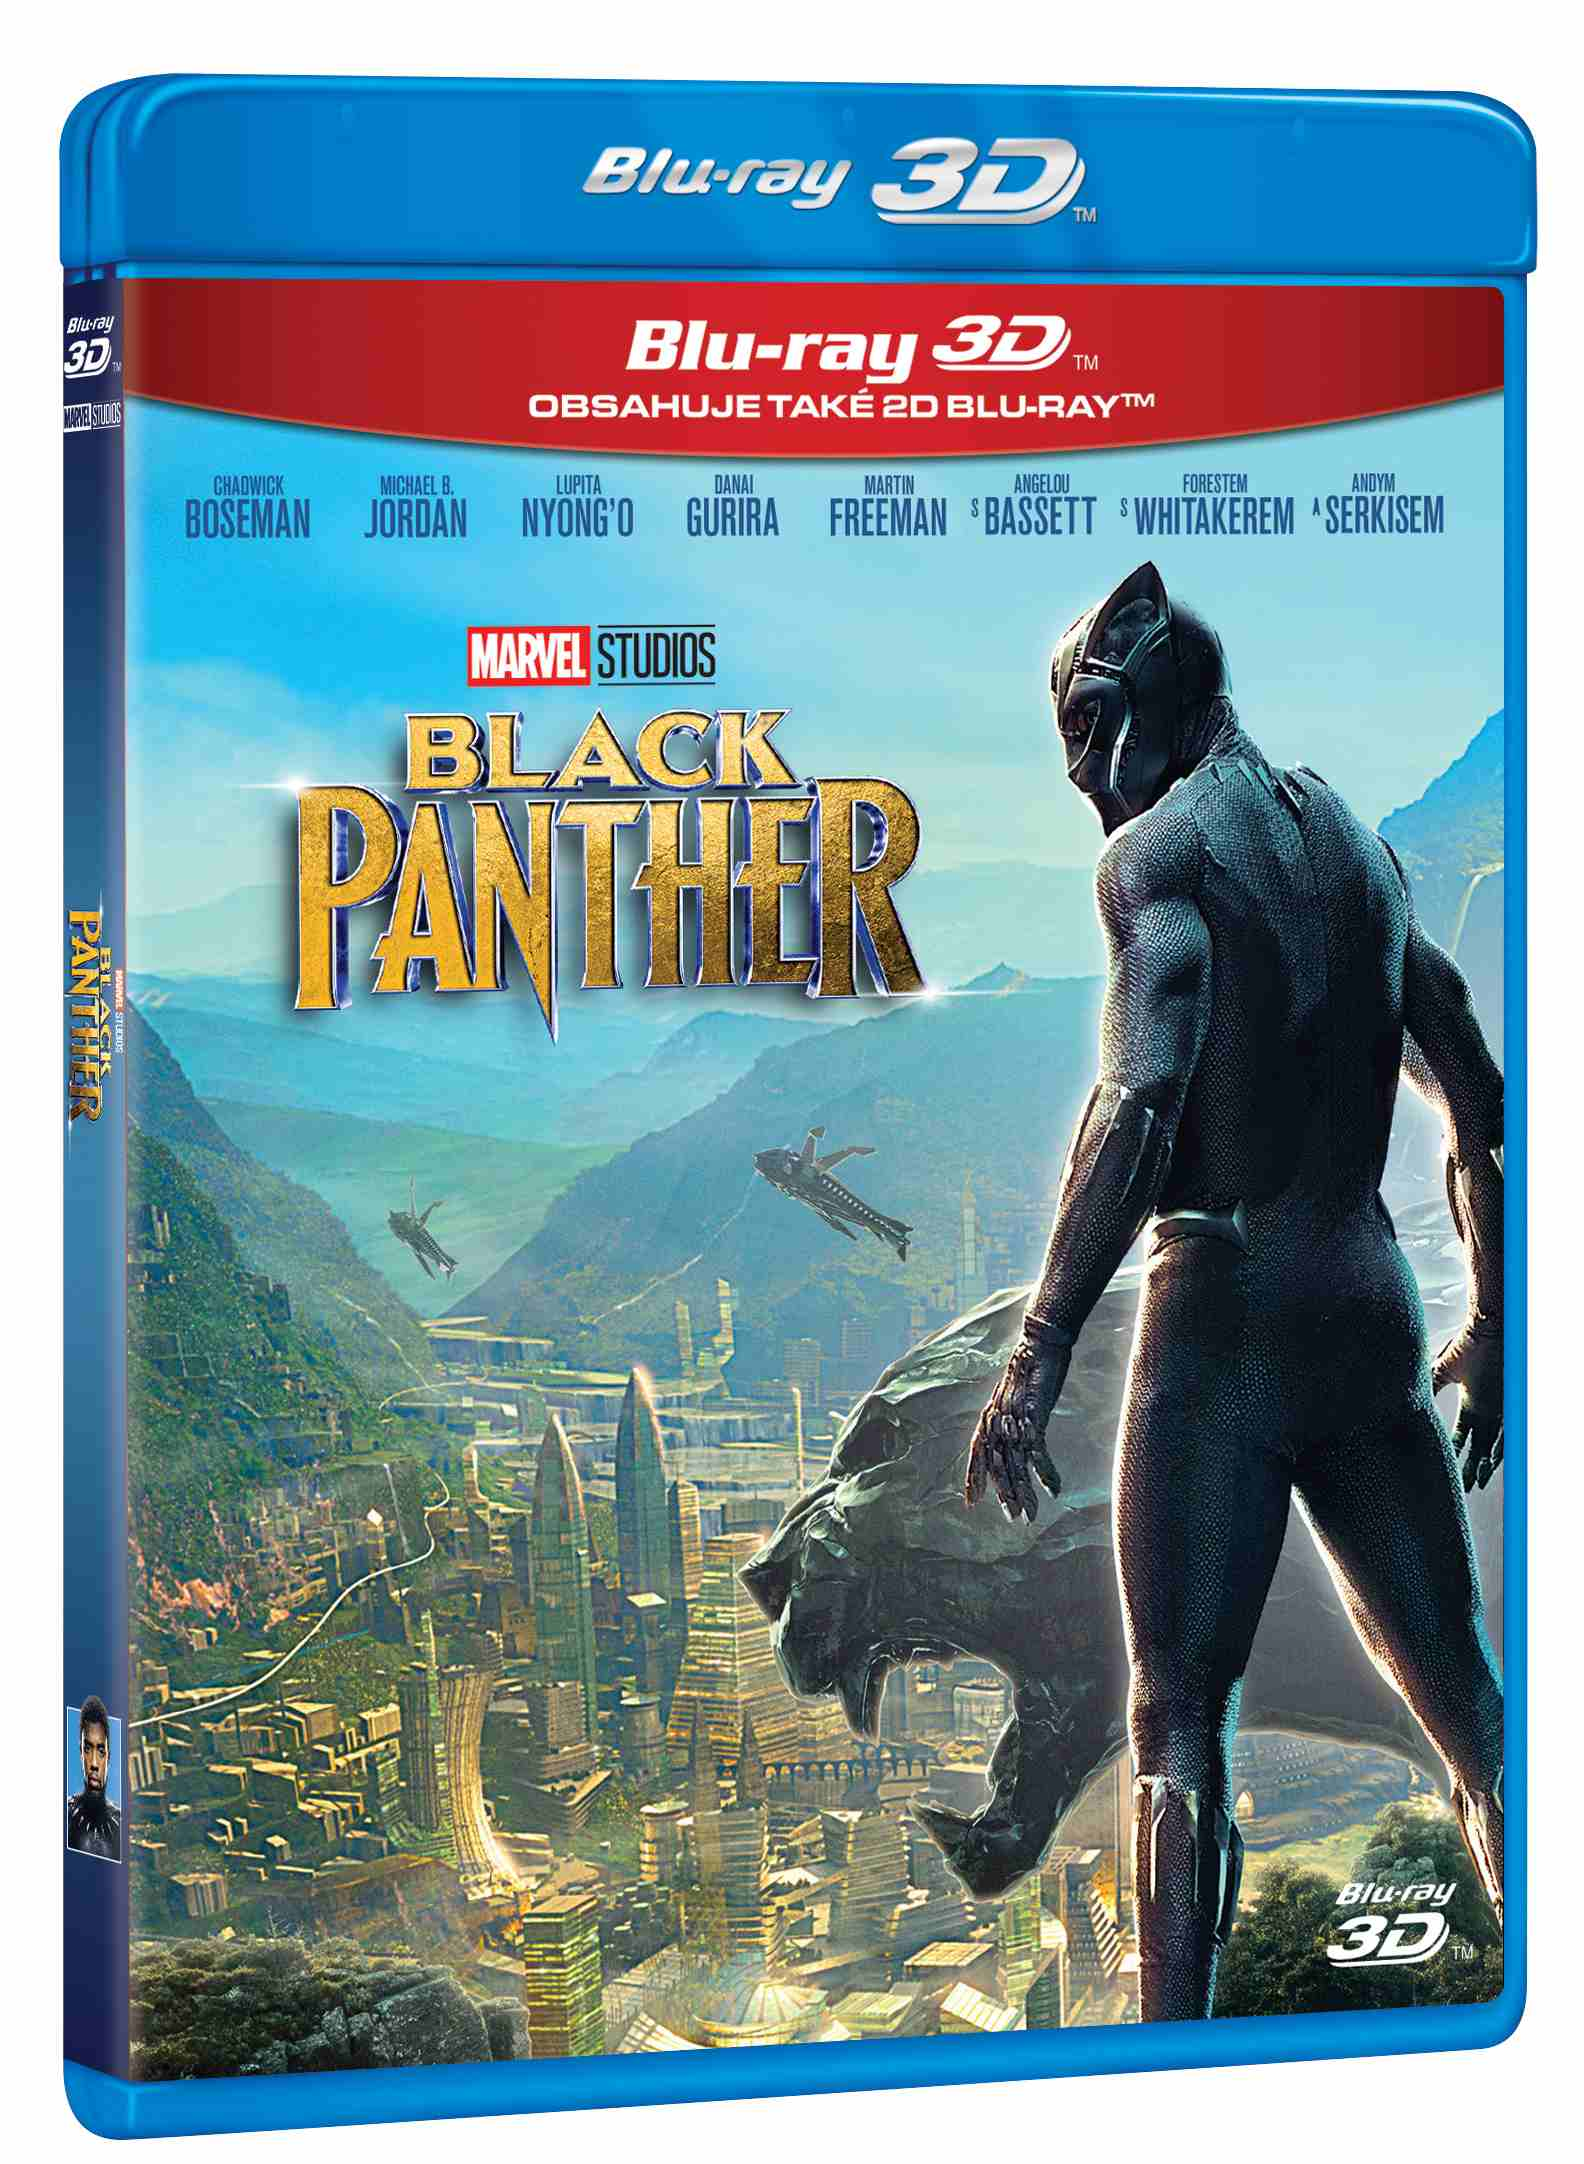 Black Panther - Blu-ray 3D + 2D